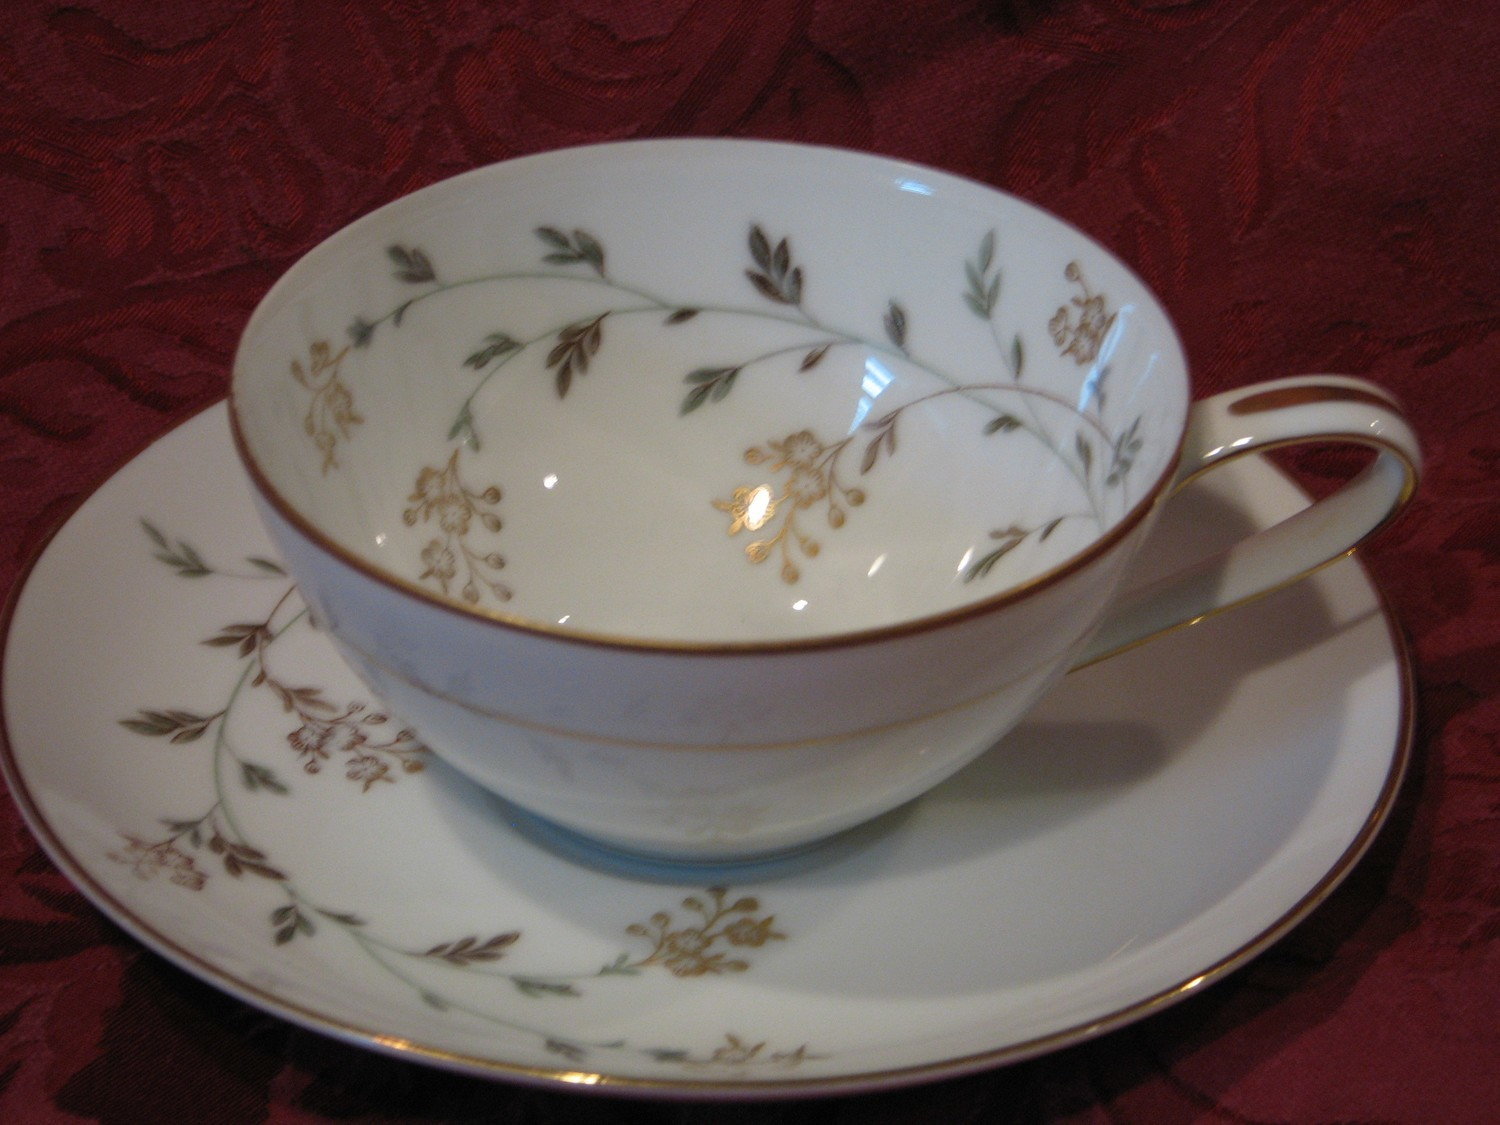 Noritake China Cup & Saucer, Andrea Pattern #5524